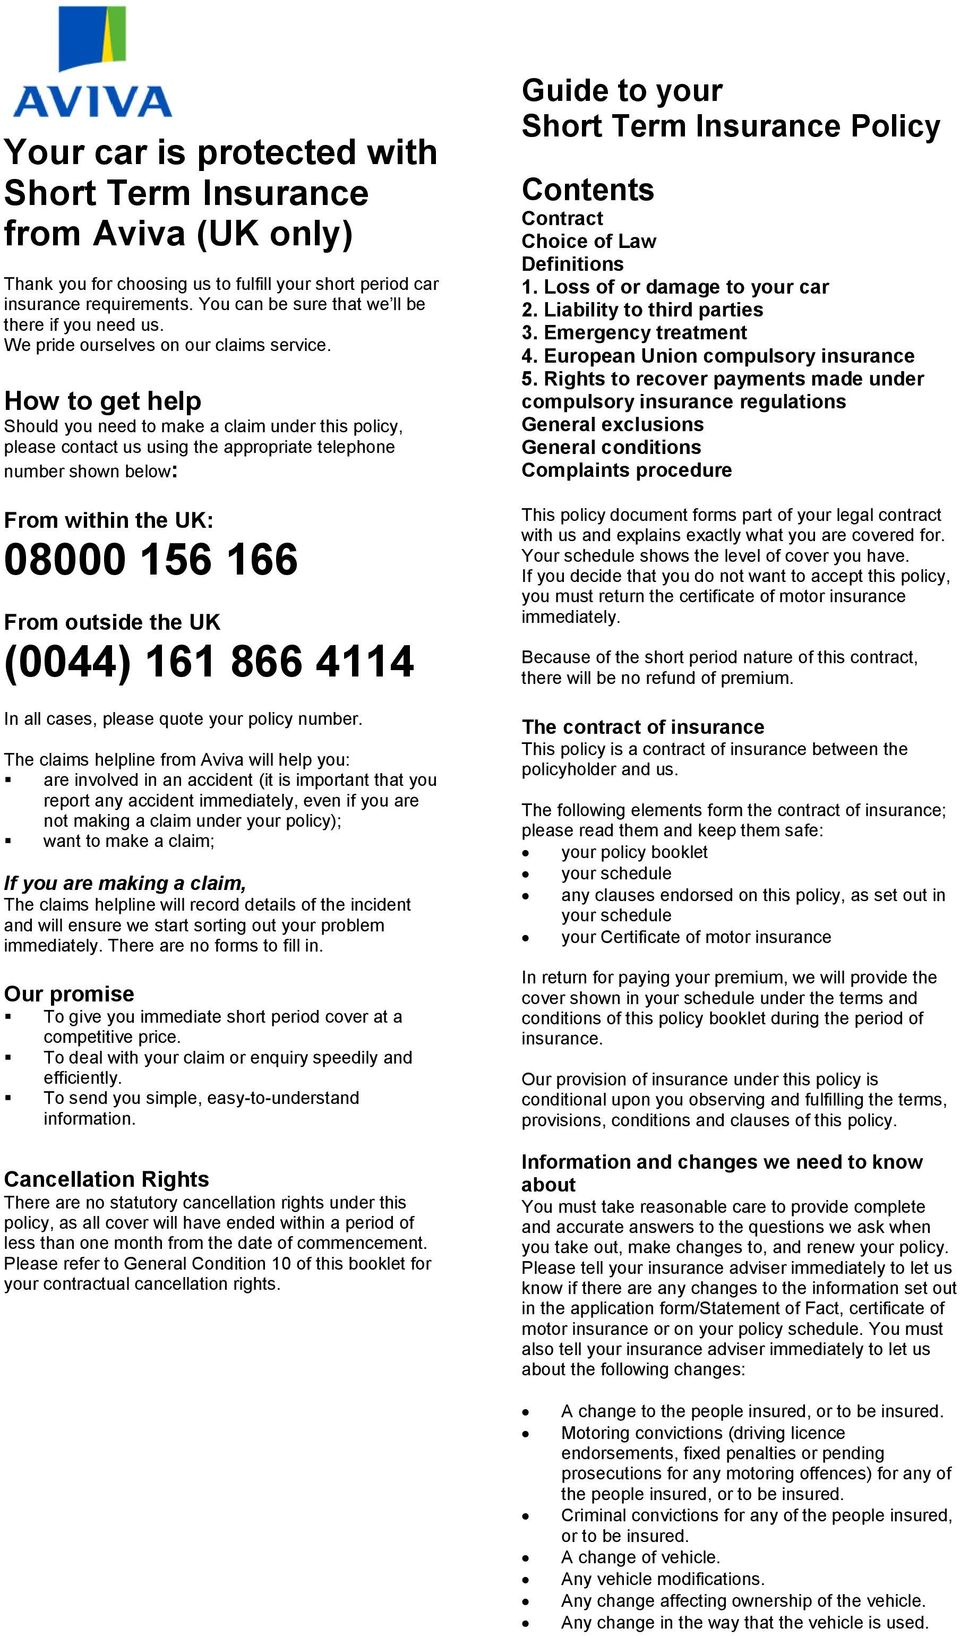 How to get help Should you need to make a claim under this policy, please contact us using the appropriate telephone number shown below: From within the UK: 08000 156 166 From outside the UK (0044)